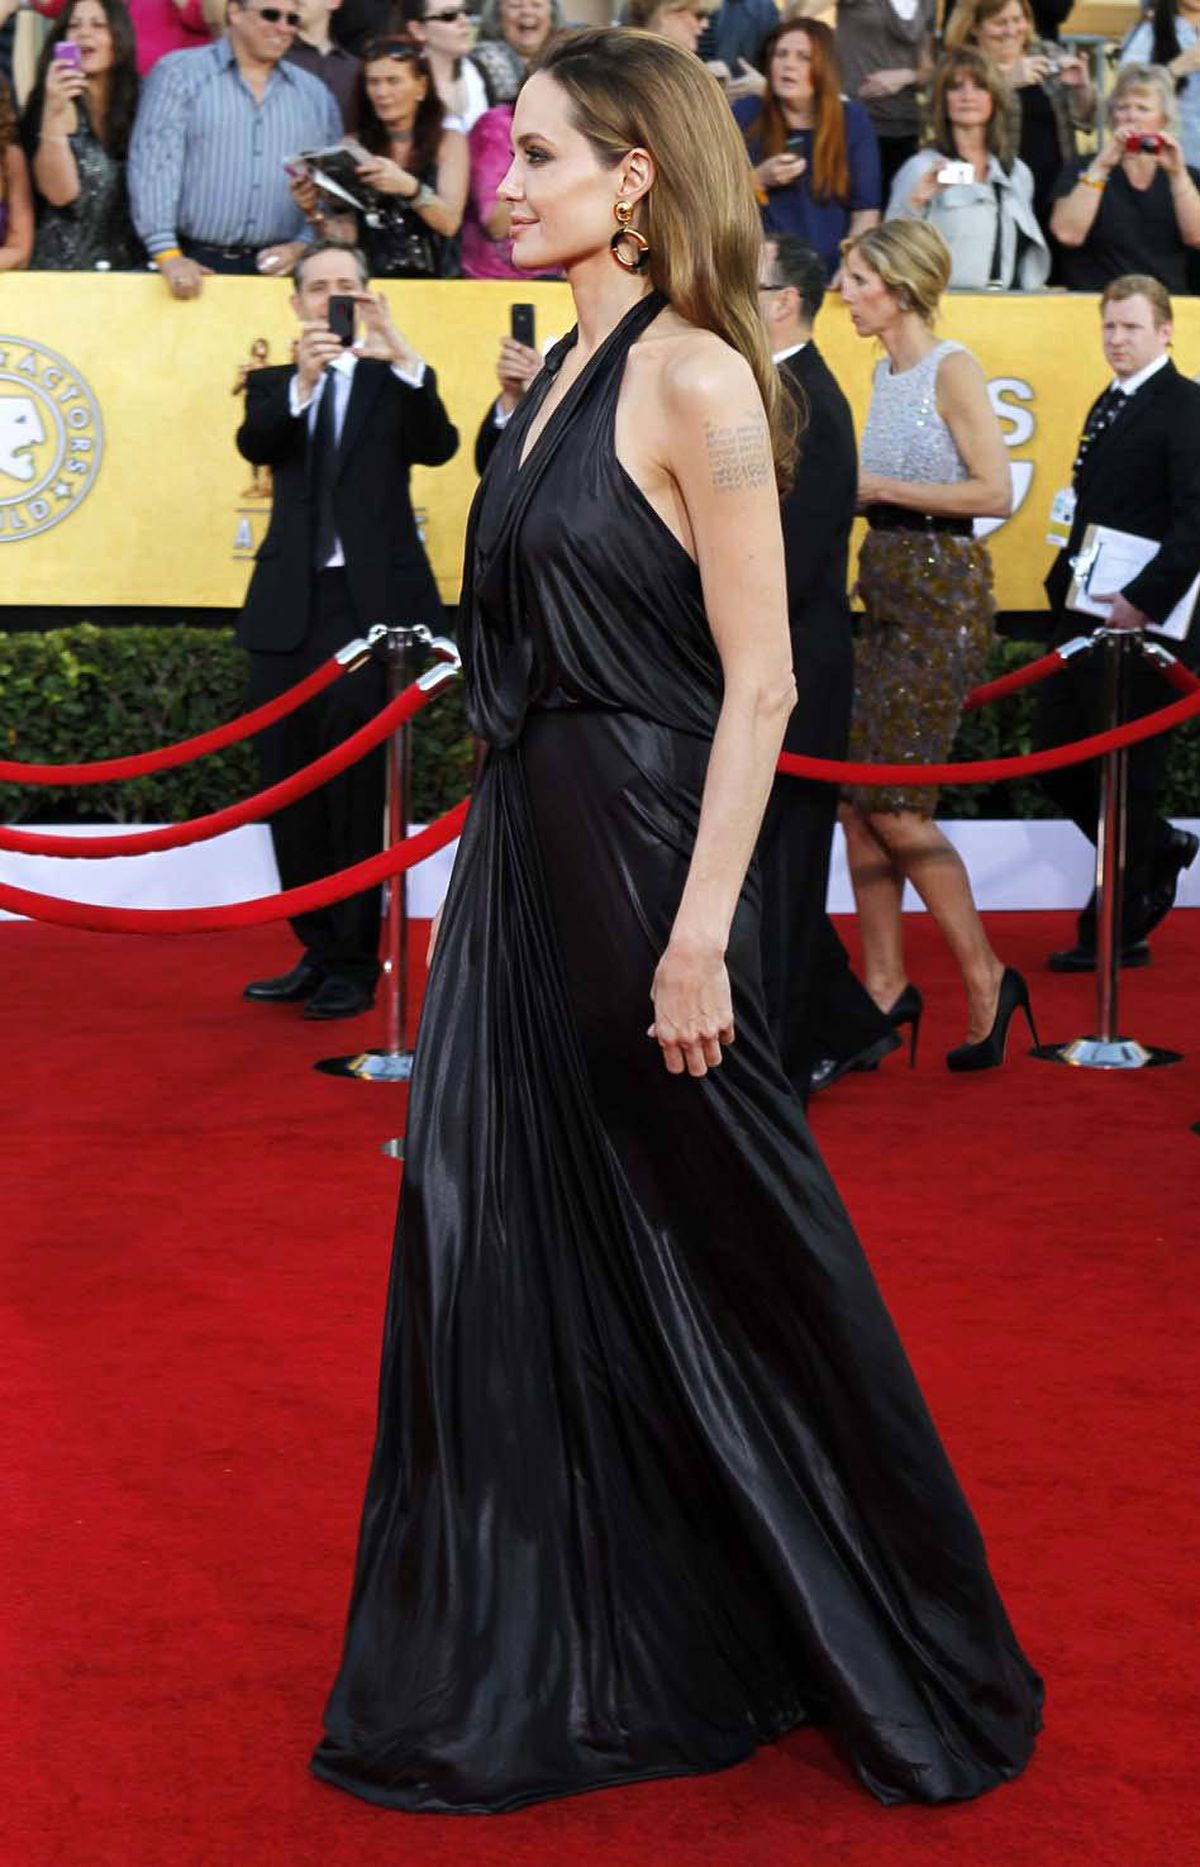 Angelina Jolie wore a gown to the SAG awards made from the latest ethically trendy material in the U.S.: Alberta bitumen.